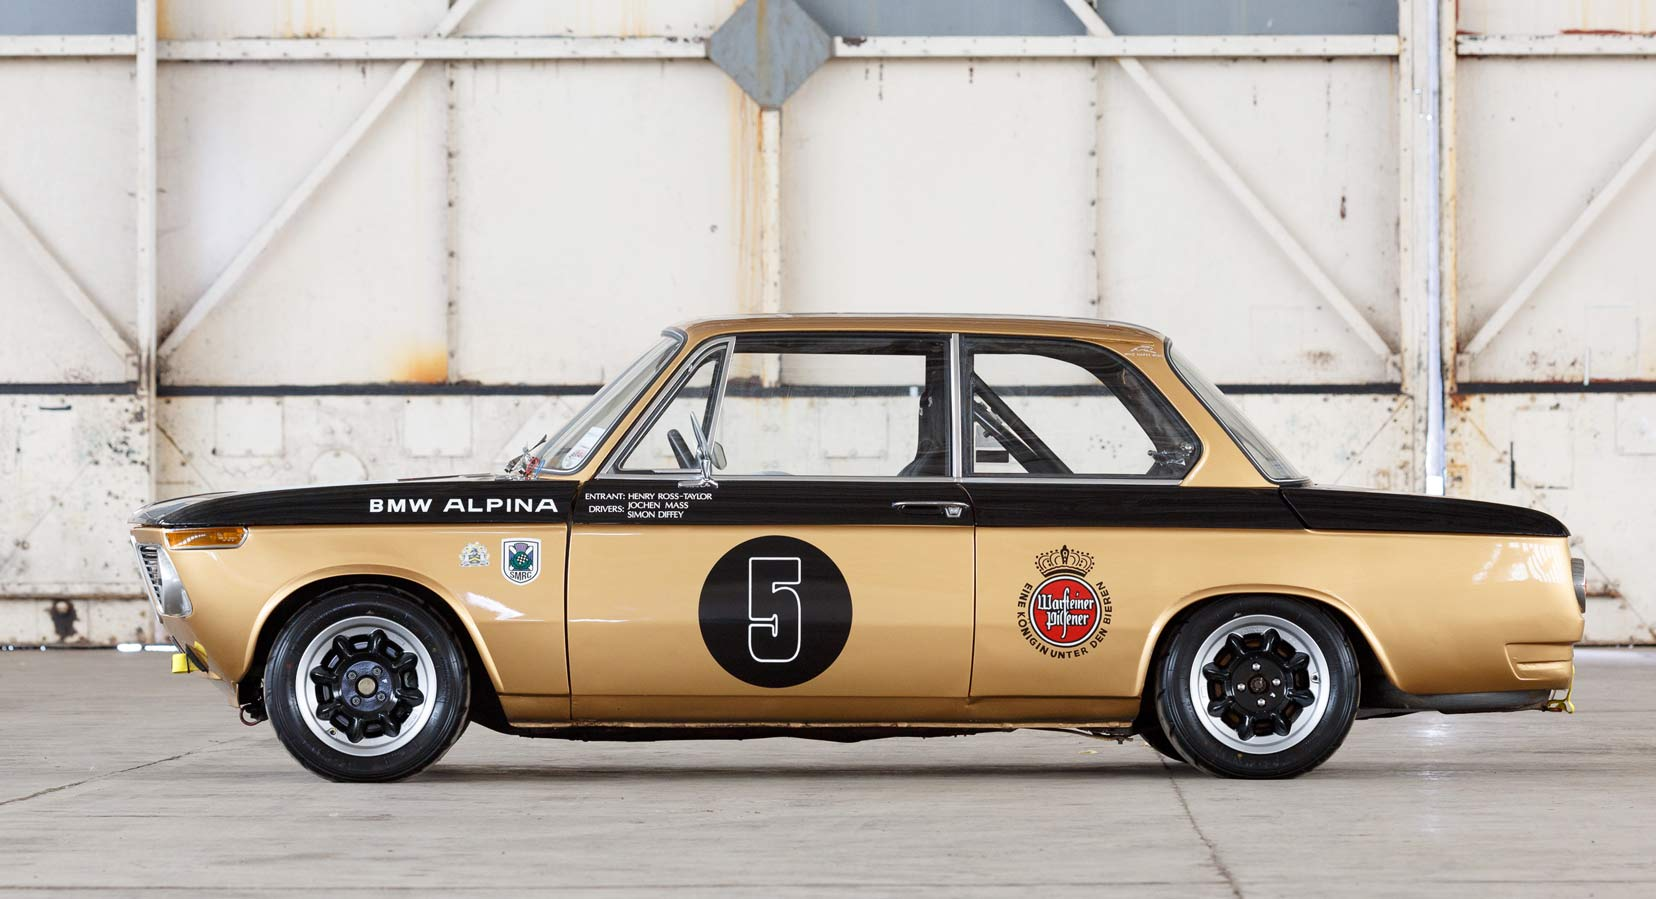 Classic Car Find of the Week: 1972 BMW 2002 Race Car